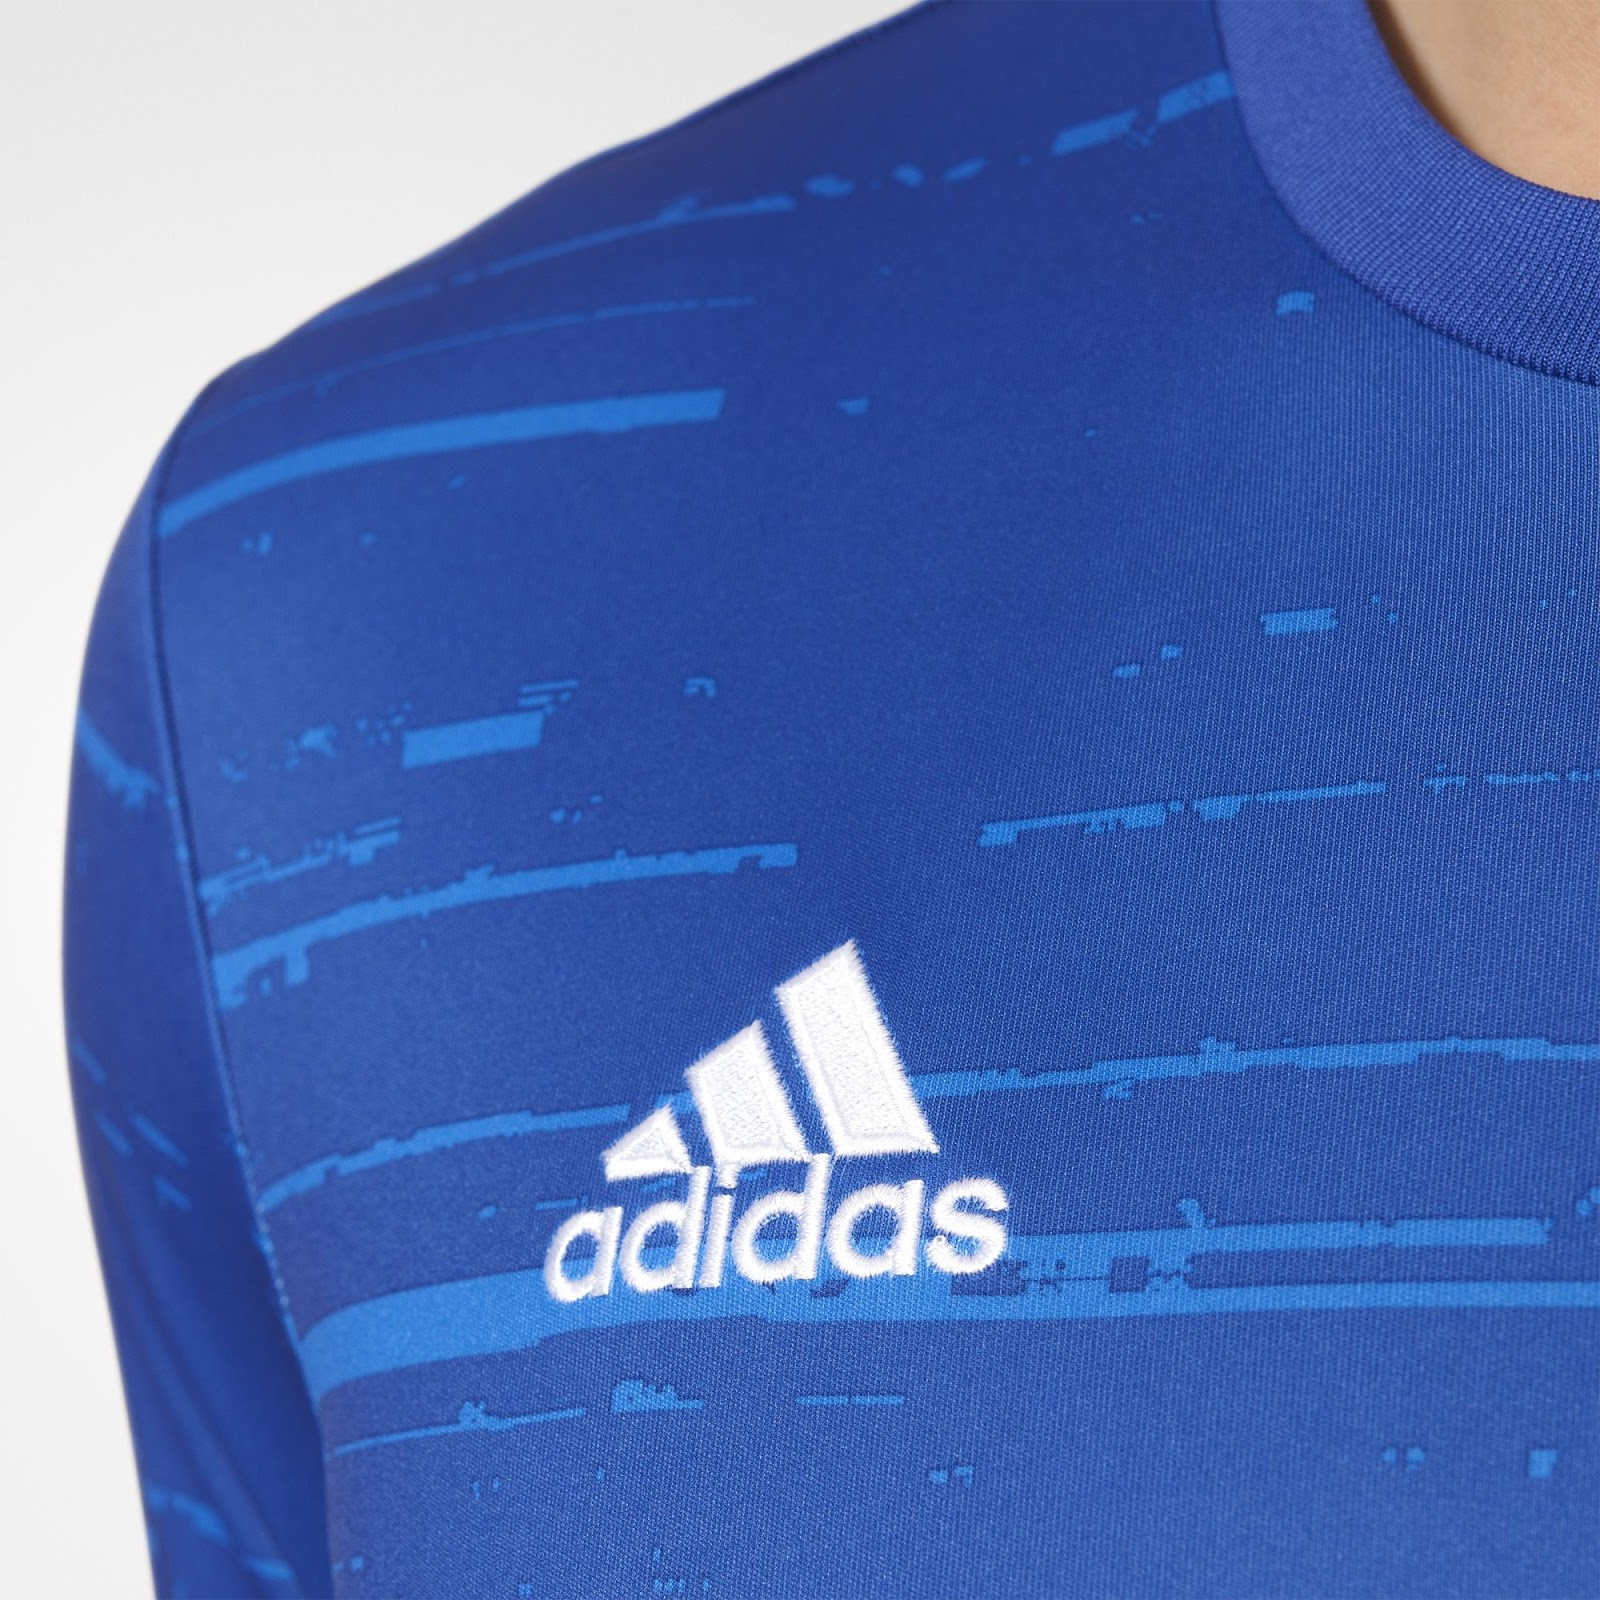 nike rapide xt libre ajustement - Chelsea 16-17 Pre-Match Shirt Released - Footy Headlines